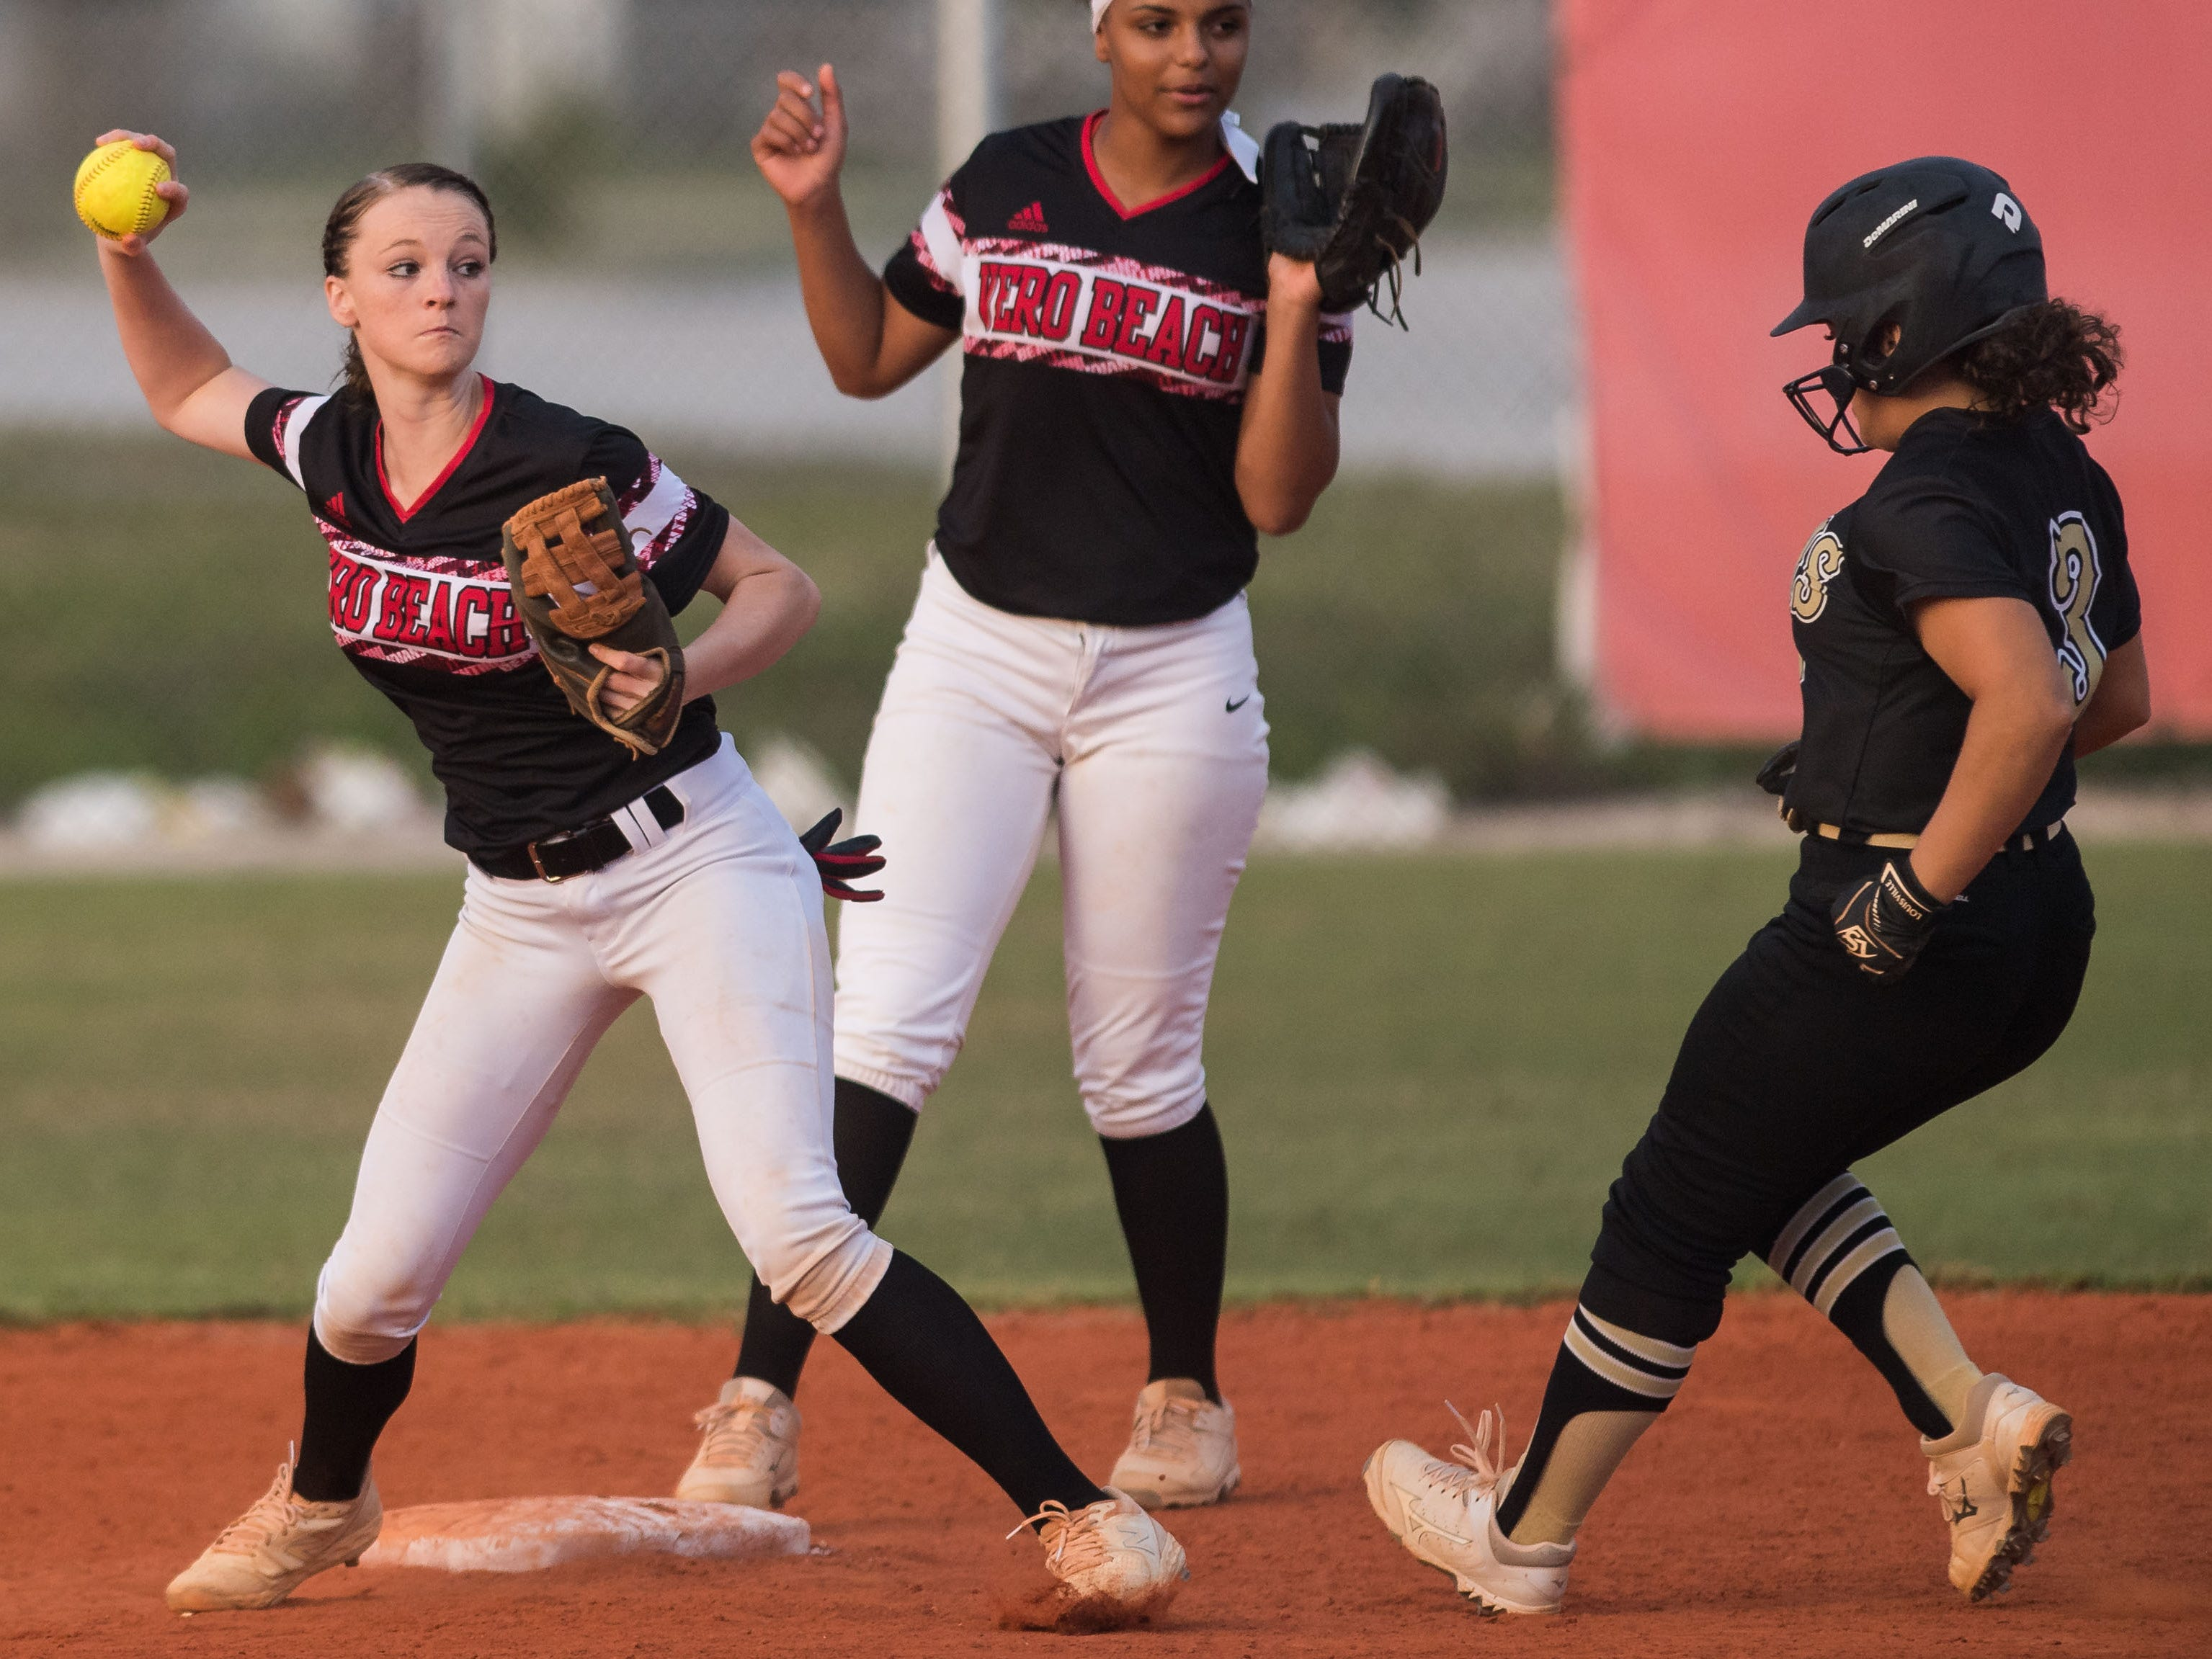 Vero Beach shortstop Summer Washburn (left) forces Treasure Coast's Amanda Ruiz out at second and throws to first for a double play during the second inning of the high school softball game Friday, March 29, 2019, at Vero Beach High School.